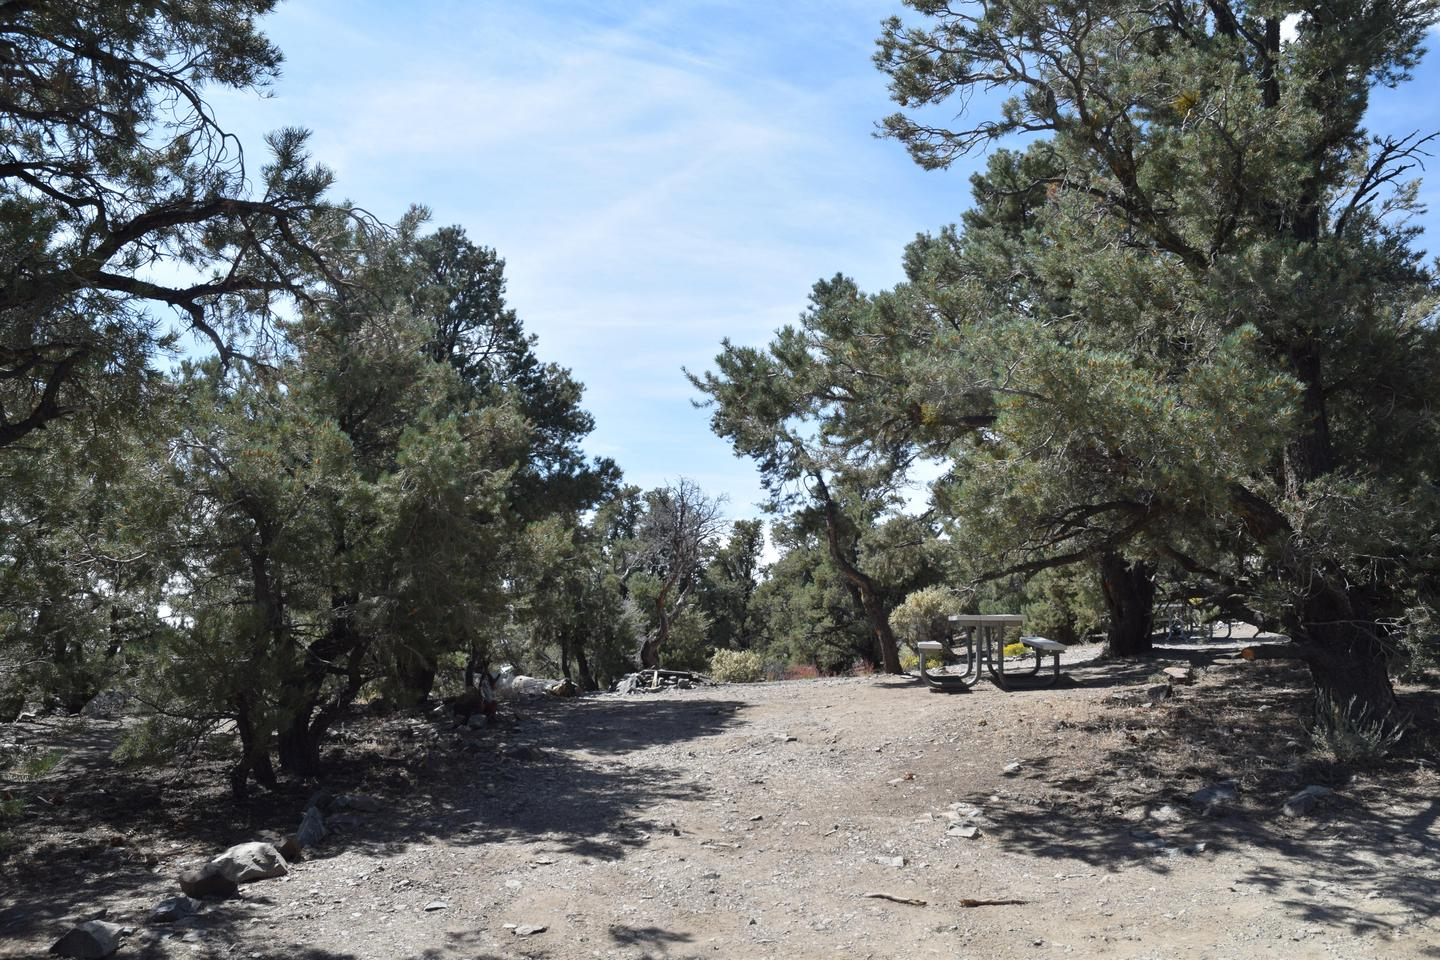 Mahogany Flat Campground Sample Site #1Sites are in a pinyon/juniper forest, with picnic tables and fire rings provided.